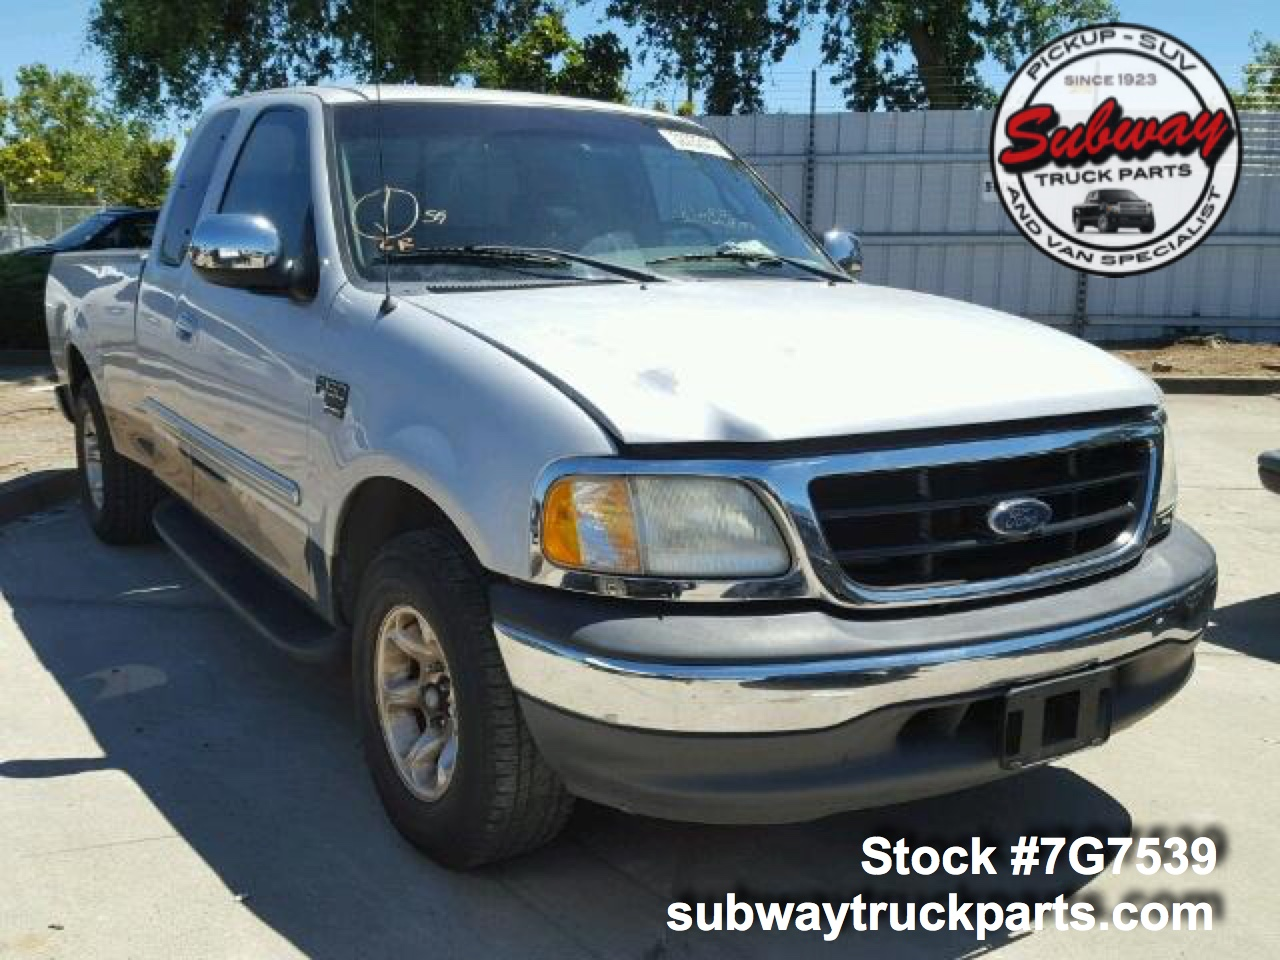 Ford Truck Parts >> Used Parts 2001 Ford F150 Xlt 5 4l 4x2 Subway Truck Parts Inc